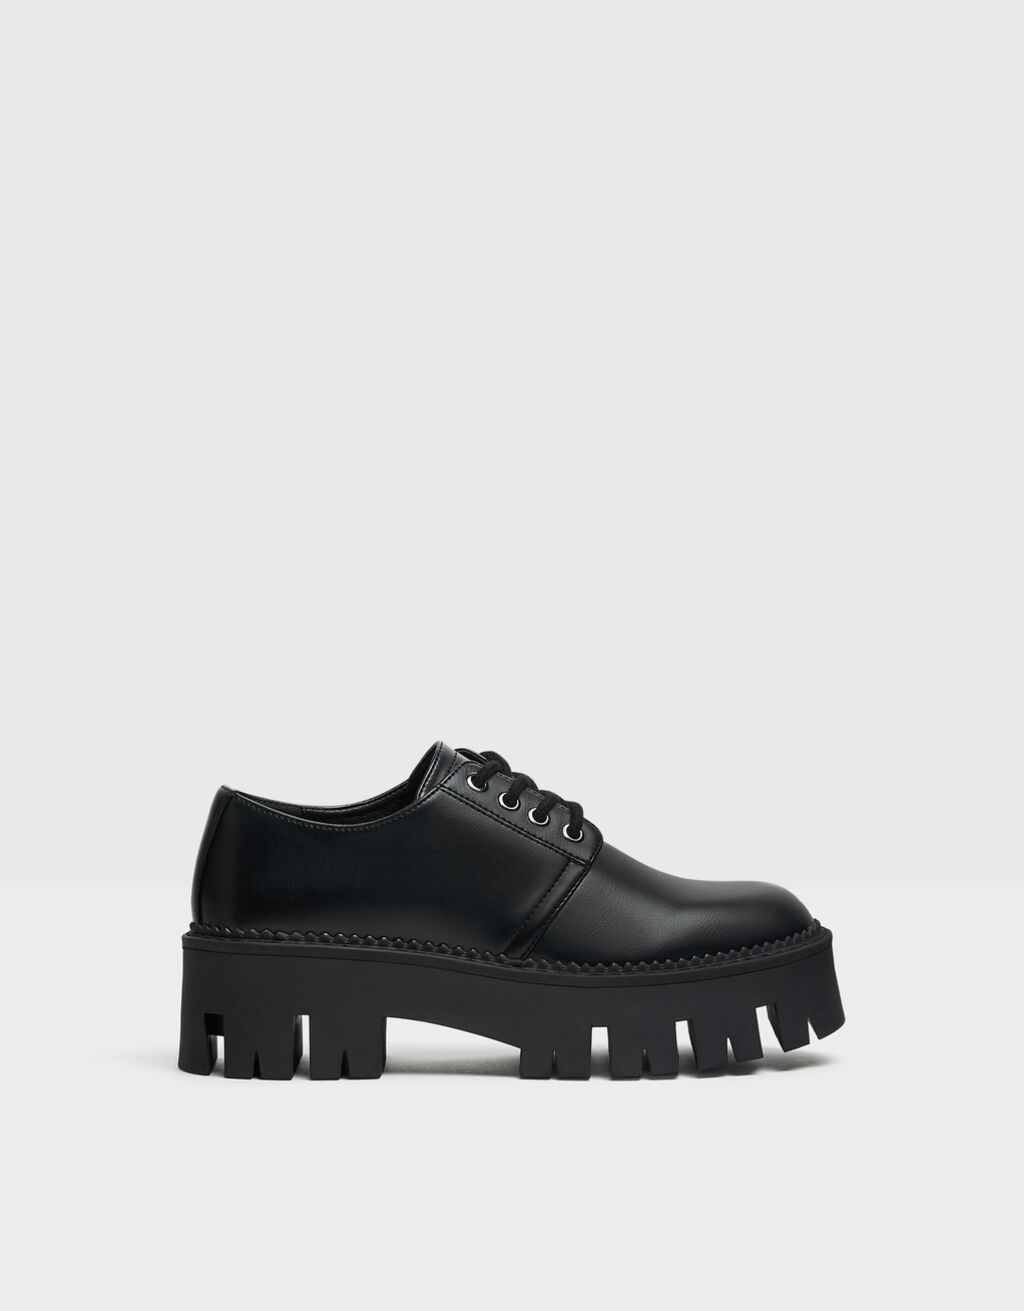 Flat platform shoes with track soles